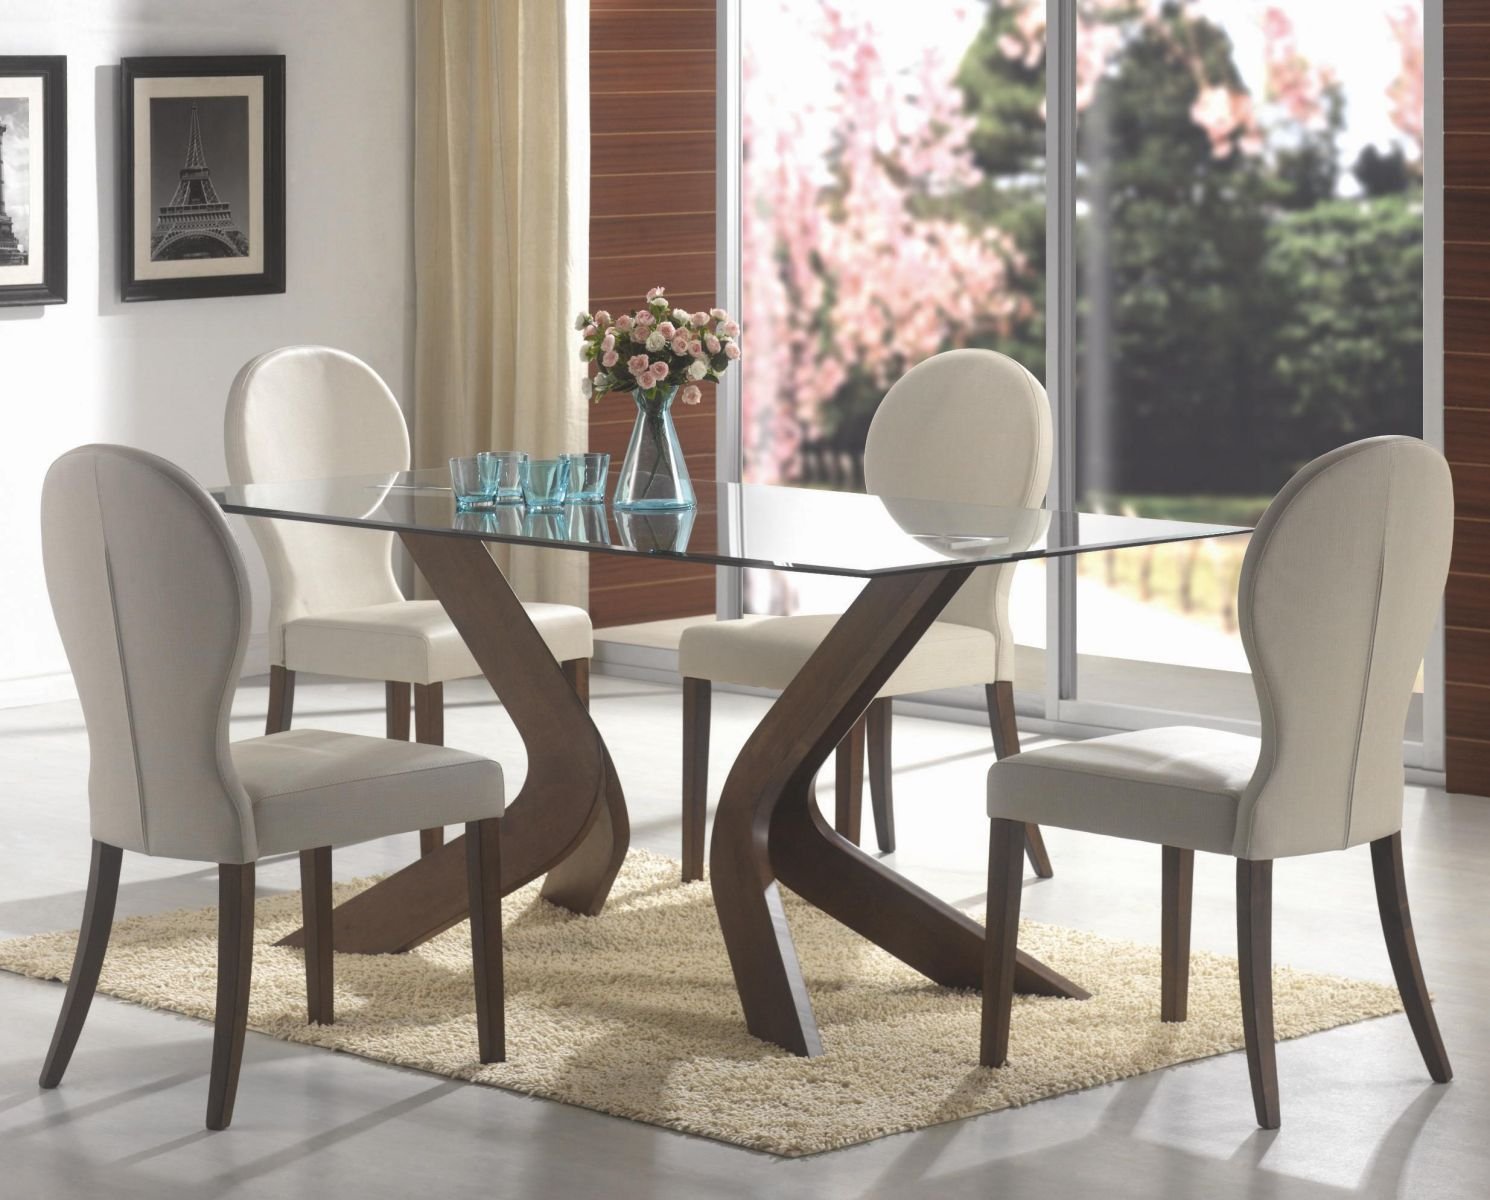 Coaster Dining Room Set Price Upon Request Call (631) 742-1351 for Best Price Guarantee ClDinette Sets New York , Dinette Sets Long Island , Dining Room Sets New York , Dining Room Sets Long Island, Dining Room Chairs Long Island ean, sculptured, and funct